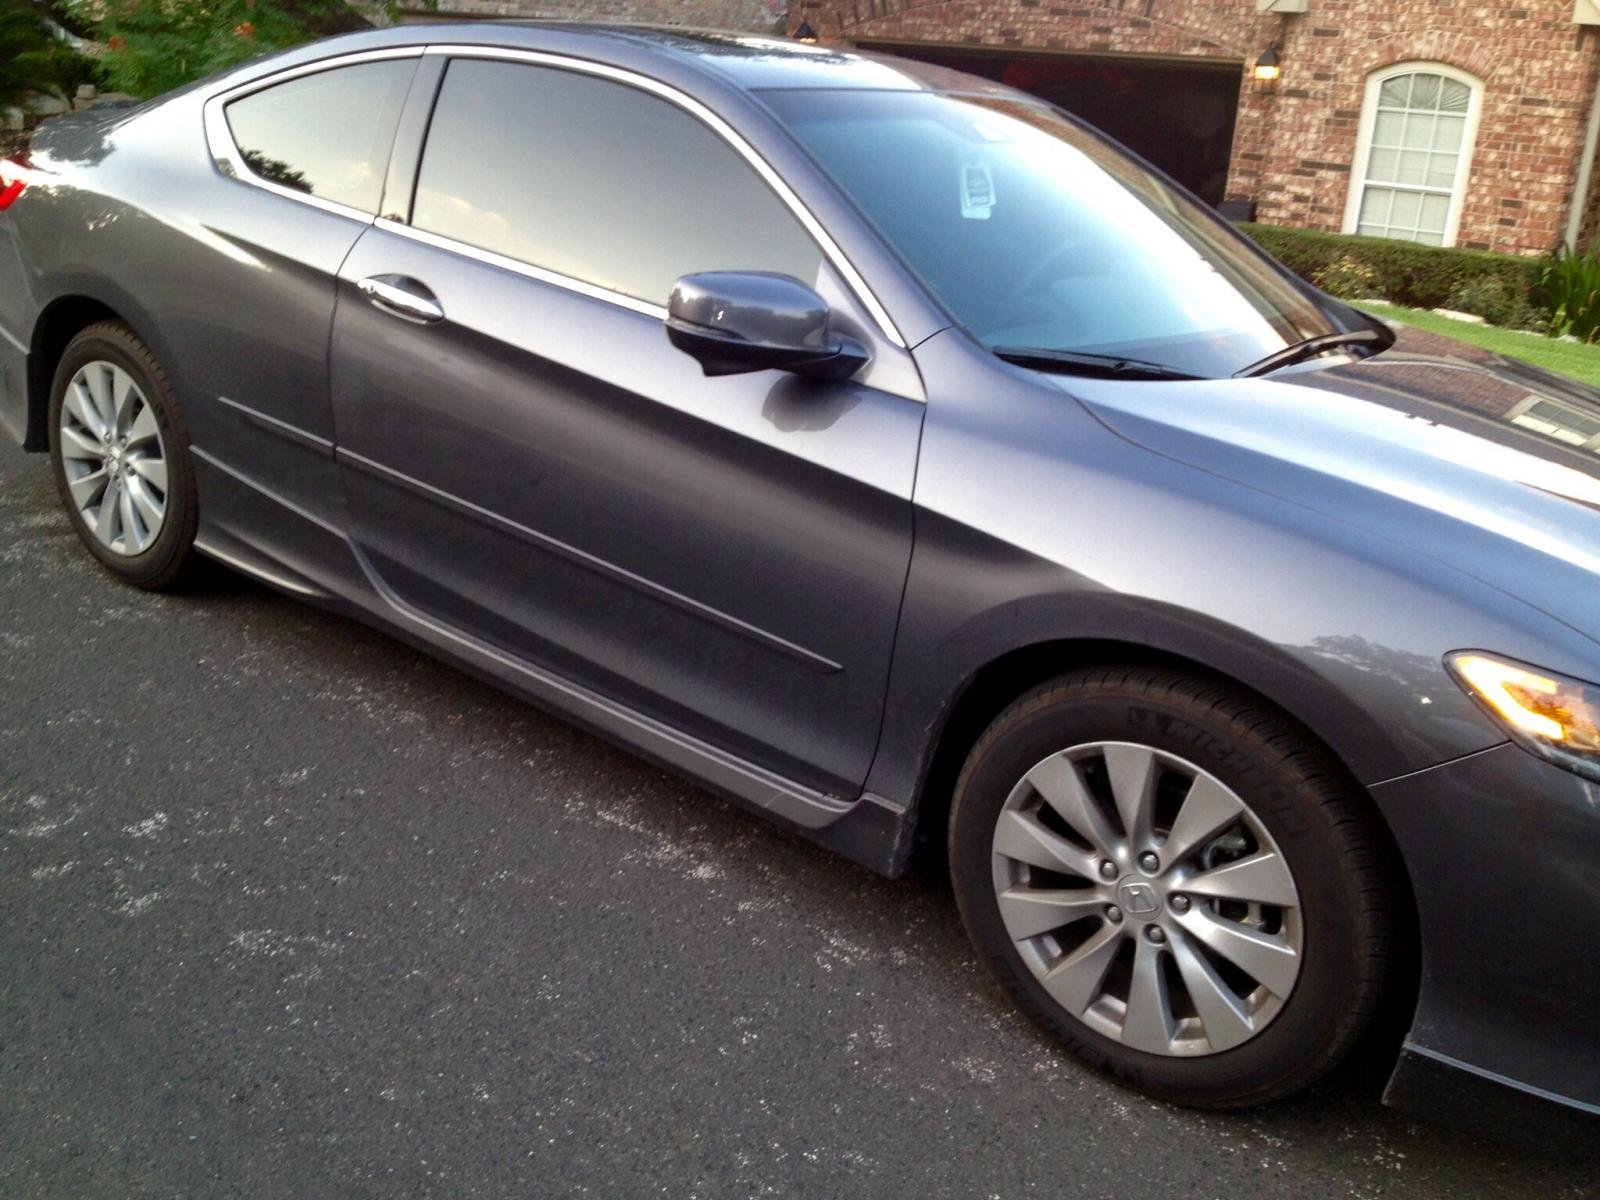 Anyone has photos of the 9th gen accord exl wheels on Civic